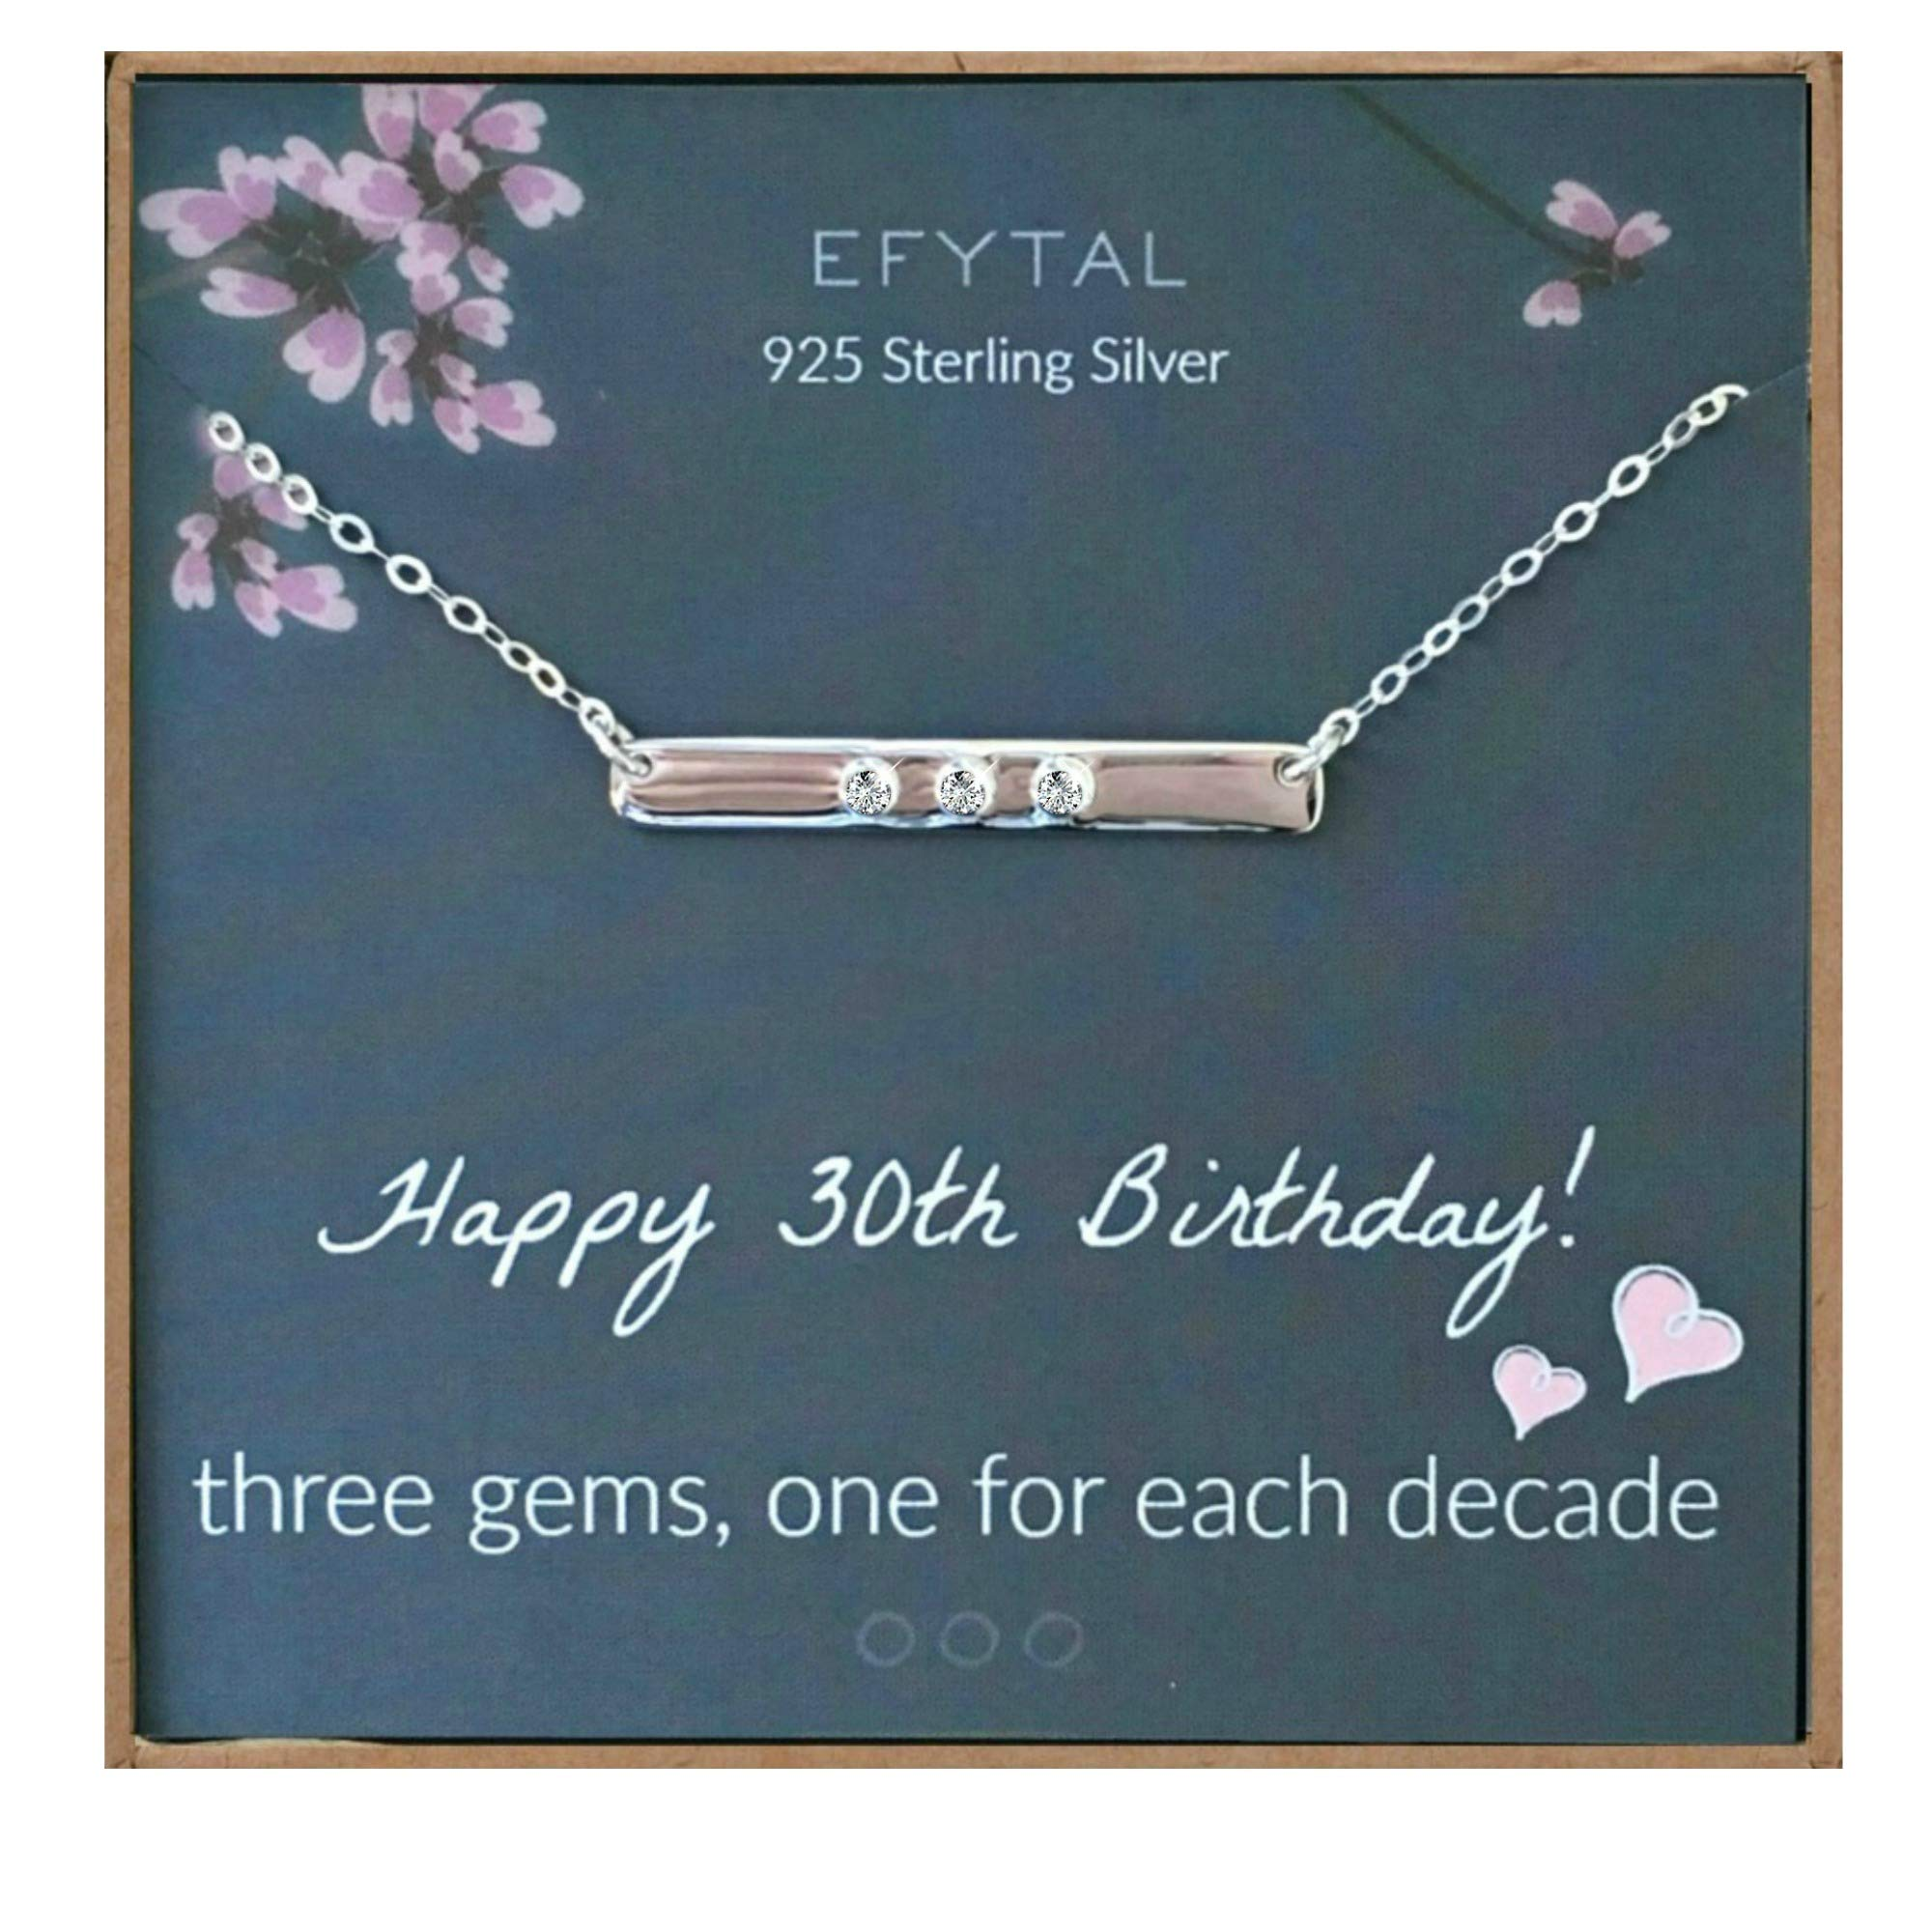 EFYTAL 30th Birthday Gifts for Women, 925 Sterling Silver Three CZ Bar Necklace For Her, 3 Decade Jewelry 30 Years Old by EFYTAL